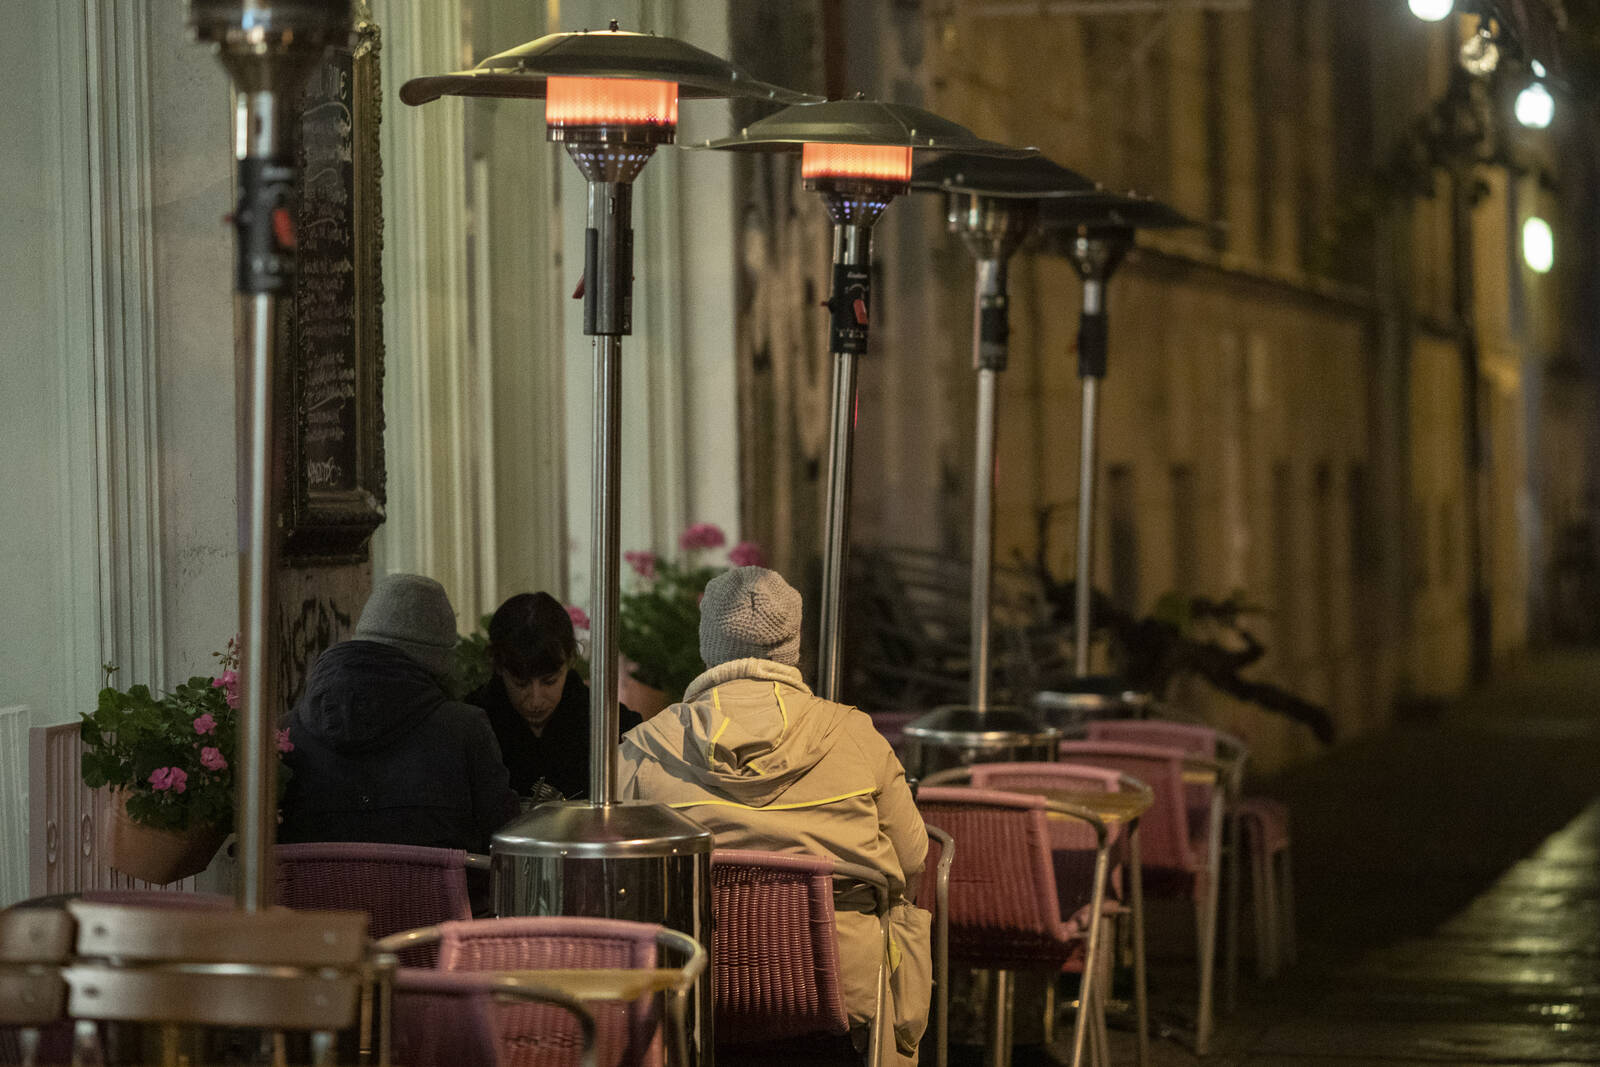 People sit outside a restaurant that uses umbrella heaters on October 15, 2020 in Berlin, Germany. Credit: Maja Hitij/Getty Images